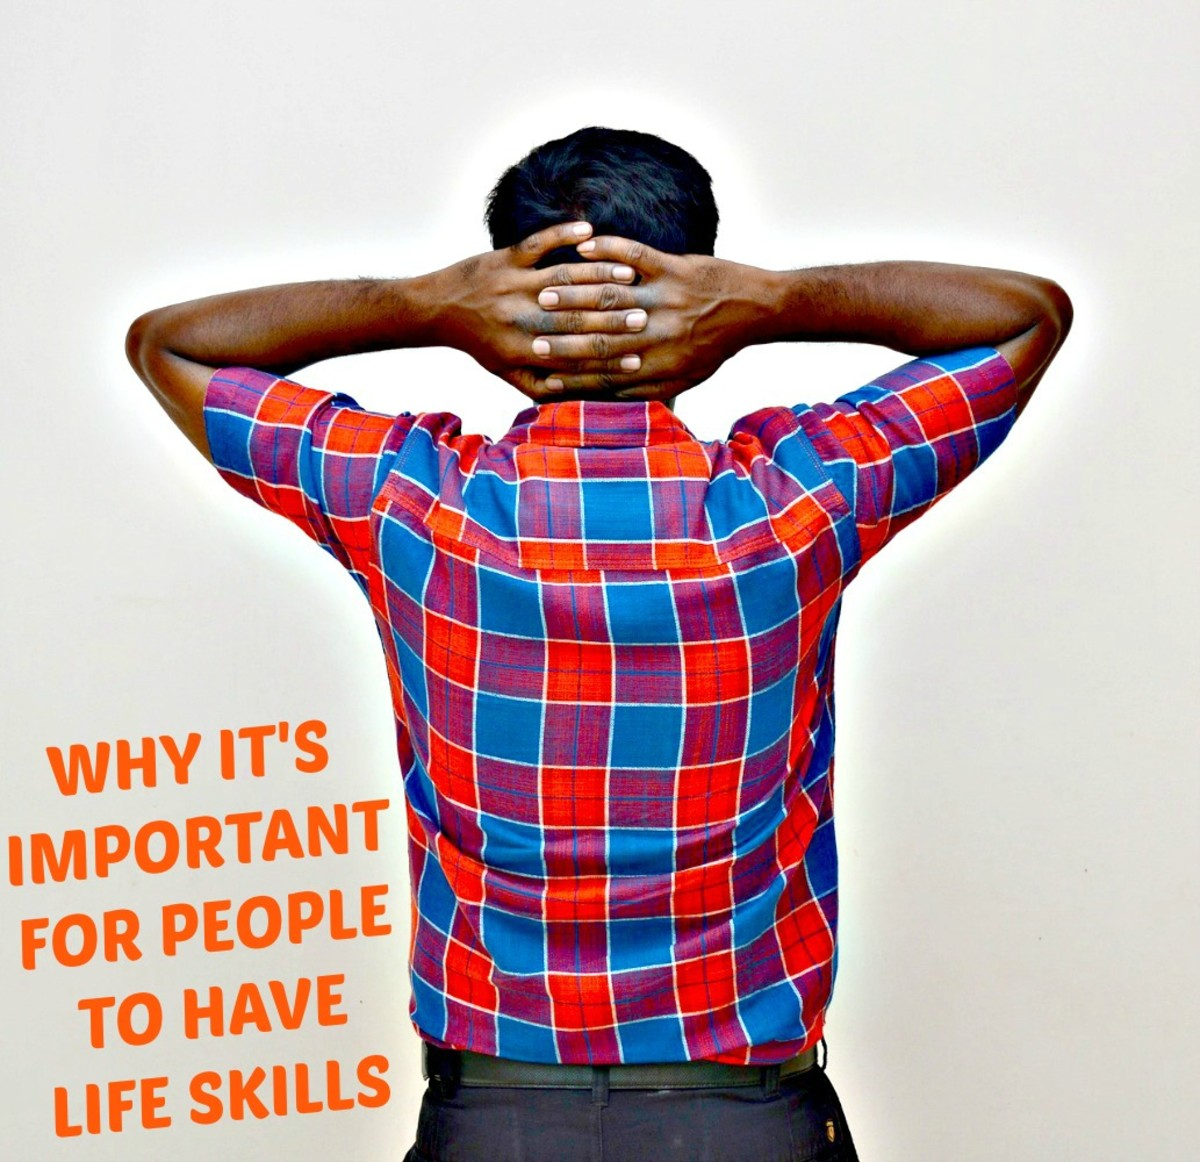 People need to have as many life skills as possible so that they can lead happier and more successful lives.